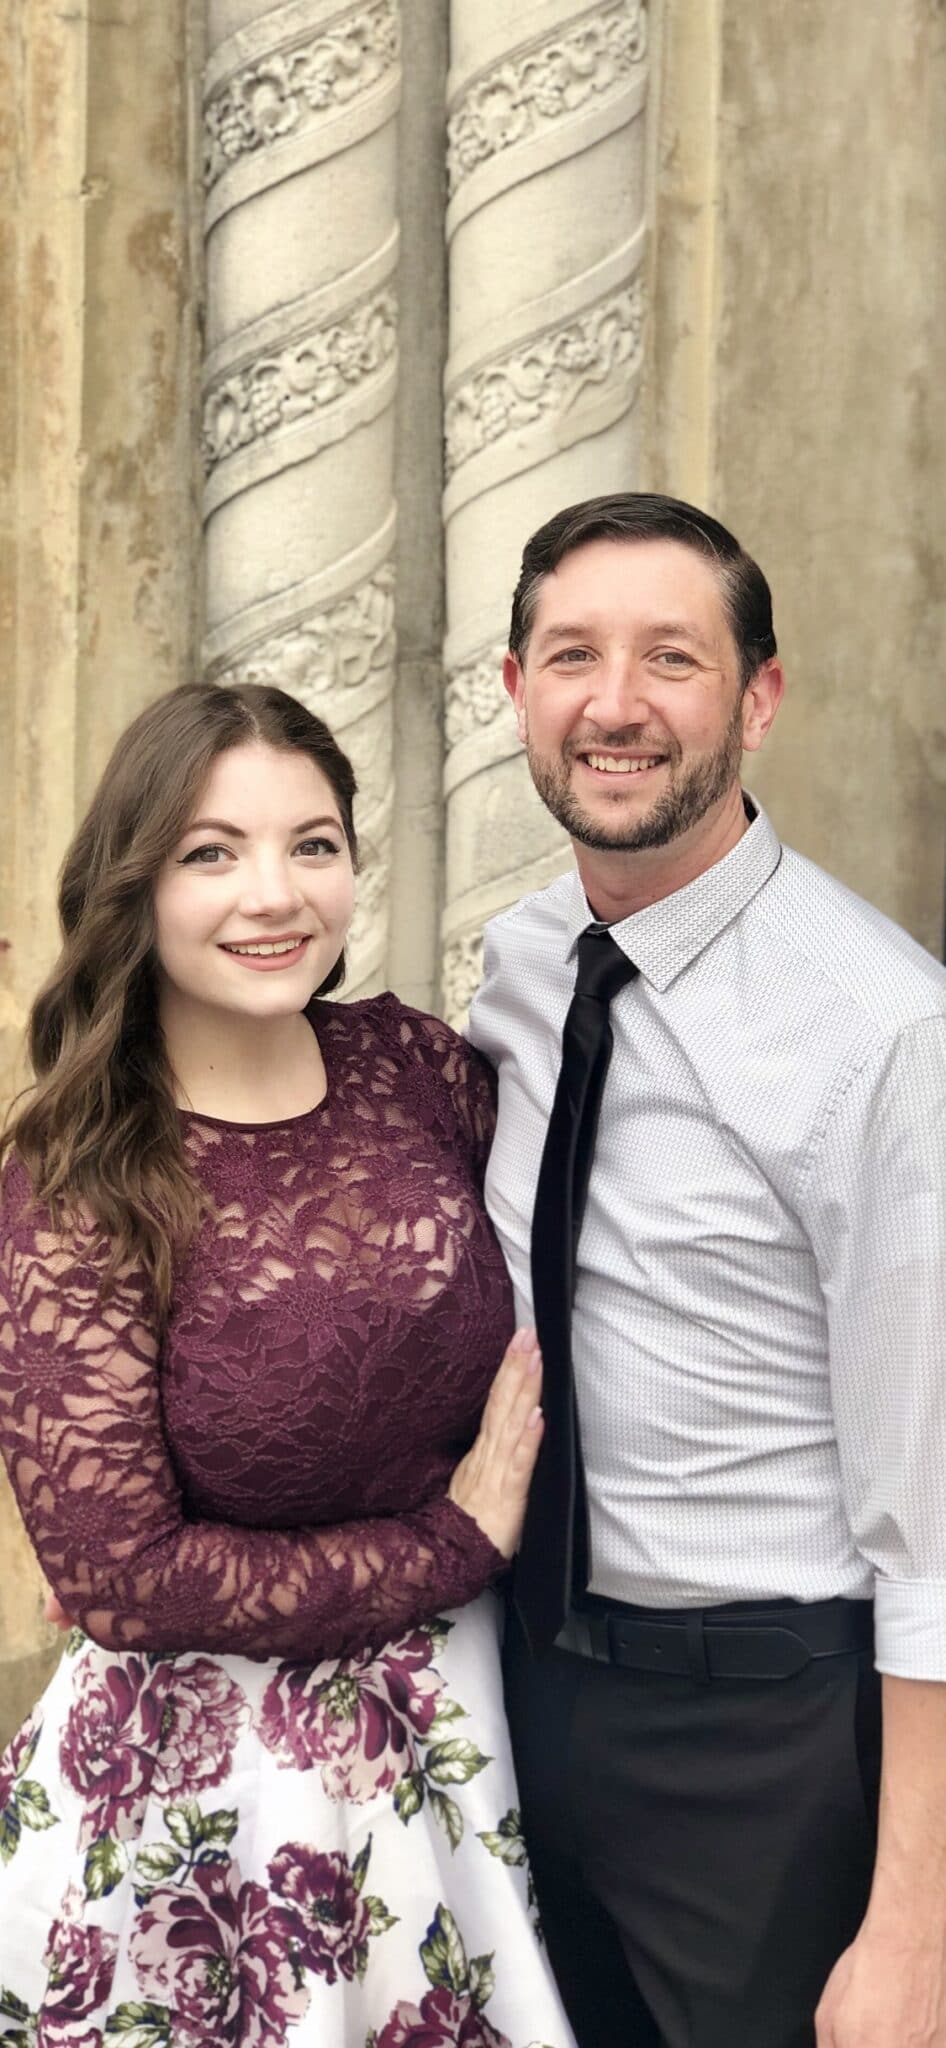 bride and groom to be standing together in dress clothes and smiling